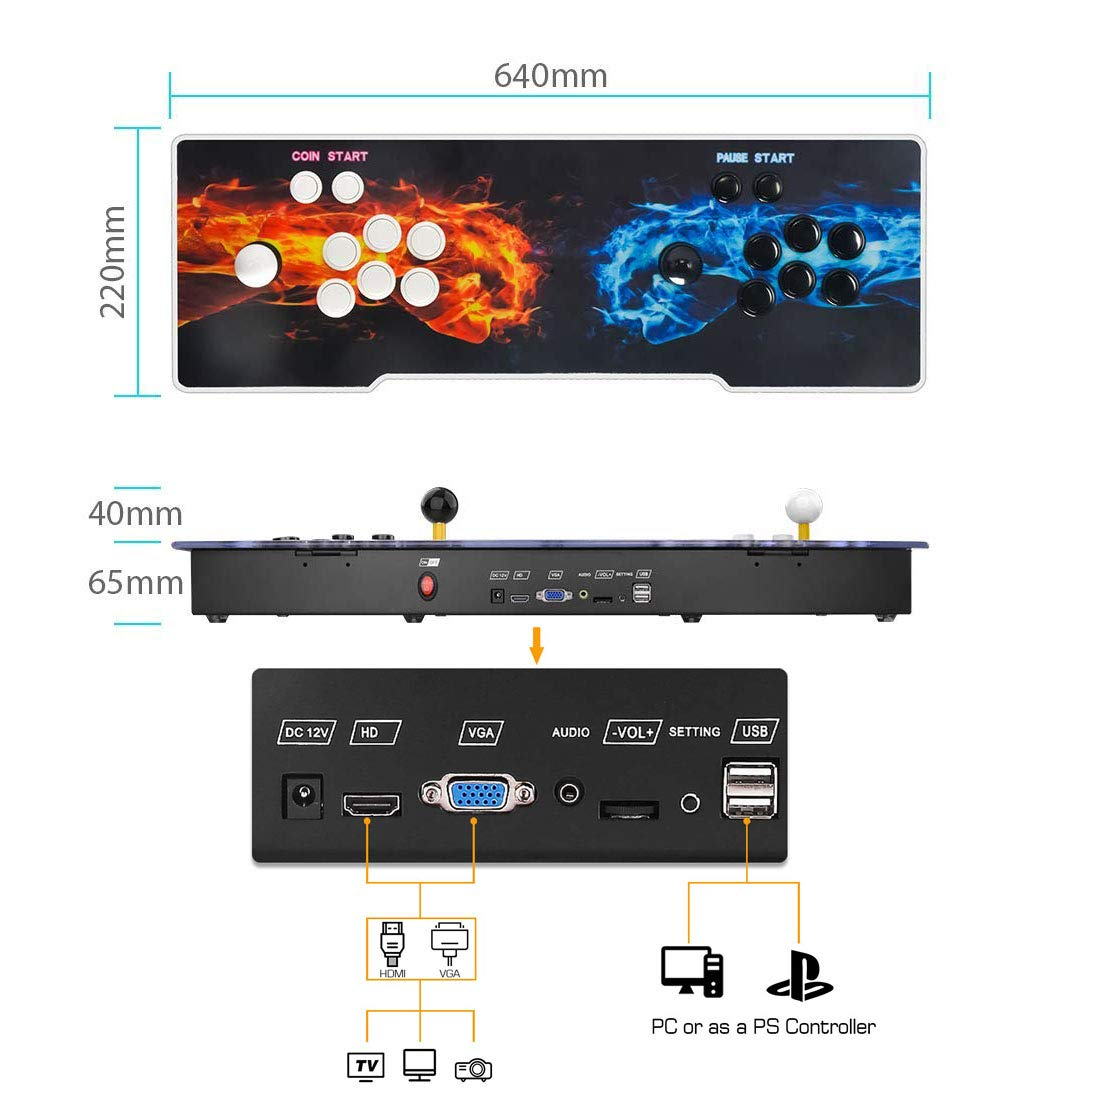 3D Pandora Key 7 Arcade Console | 2177 Games Pre-loaded | Support 2D/3D Games | Add More Games | Full HD (1920x1080) Video | Support 4 Players | 2 Player Game Controls | HDMI/VGA/USB/AUX Audio Output by MYMIQEY (Image #6)